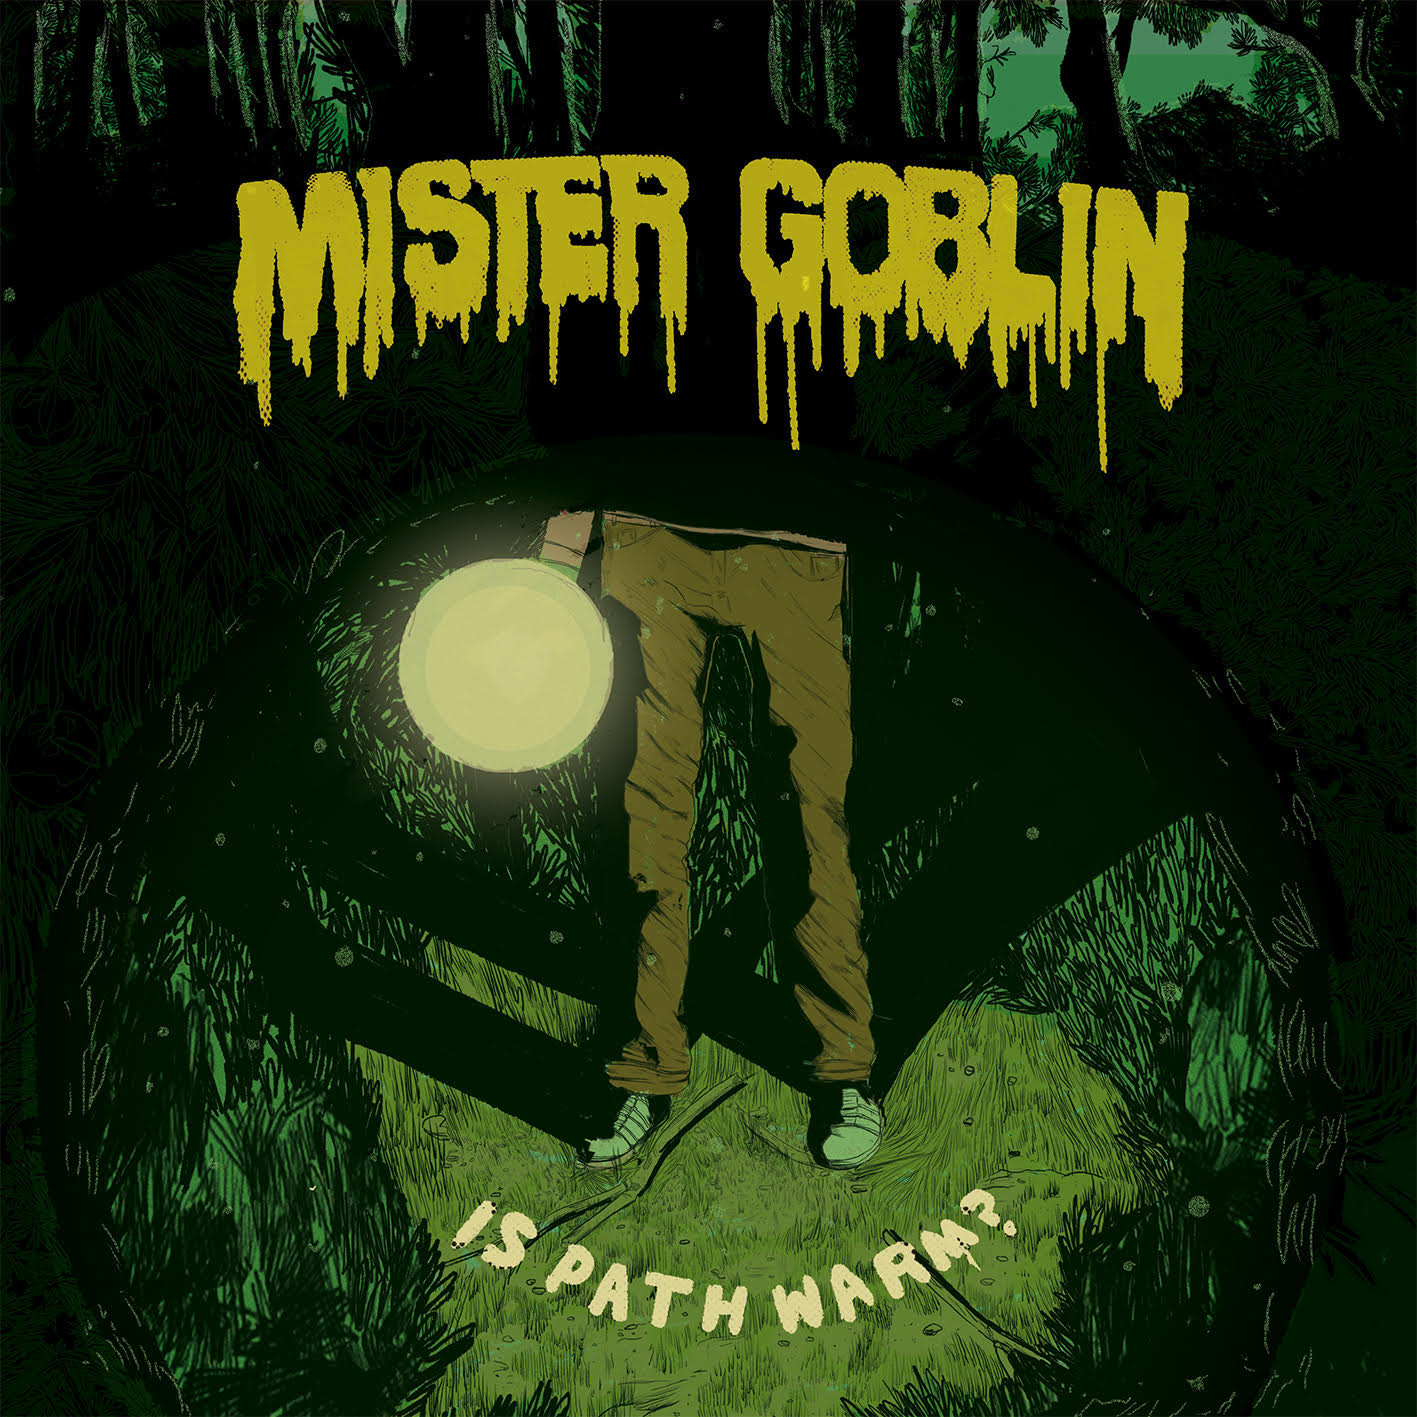 Mister Goblin Is Path Warm? album cover artwork